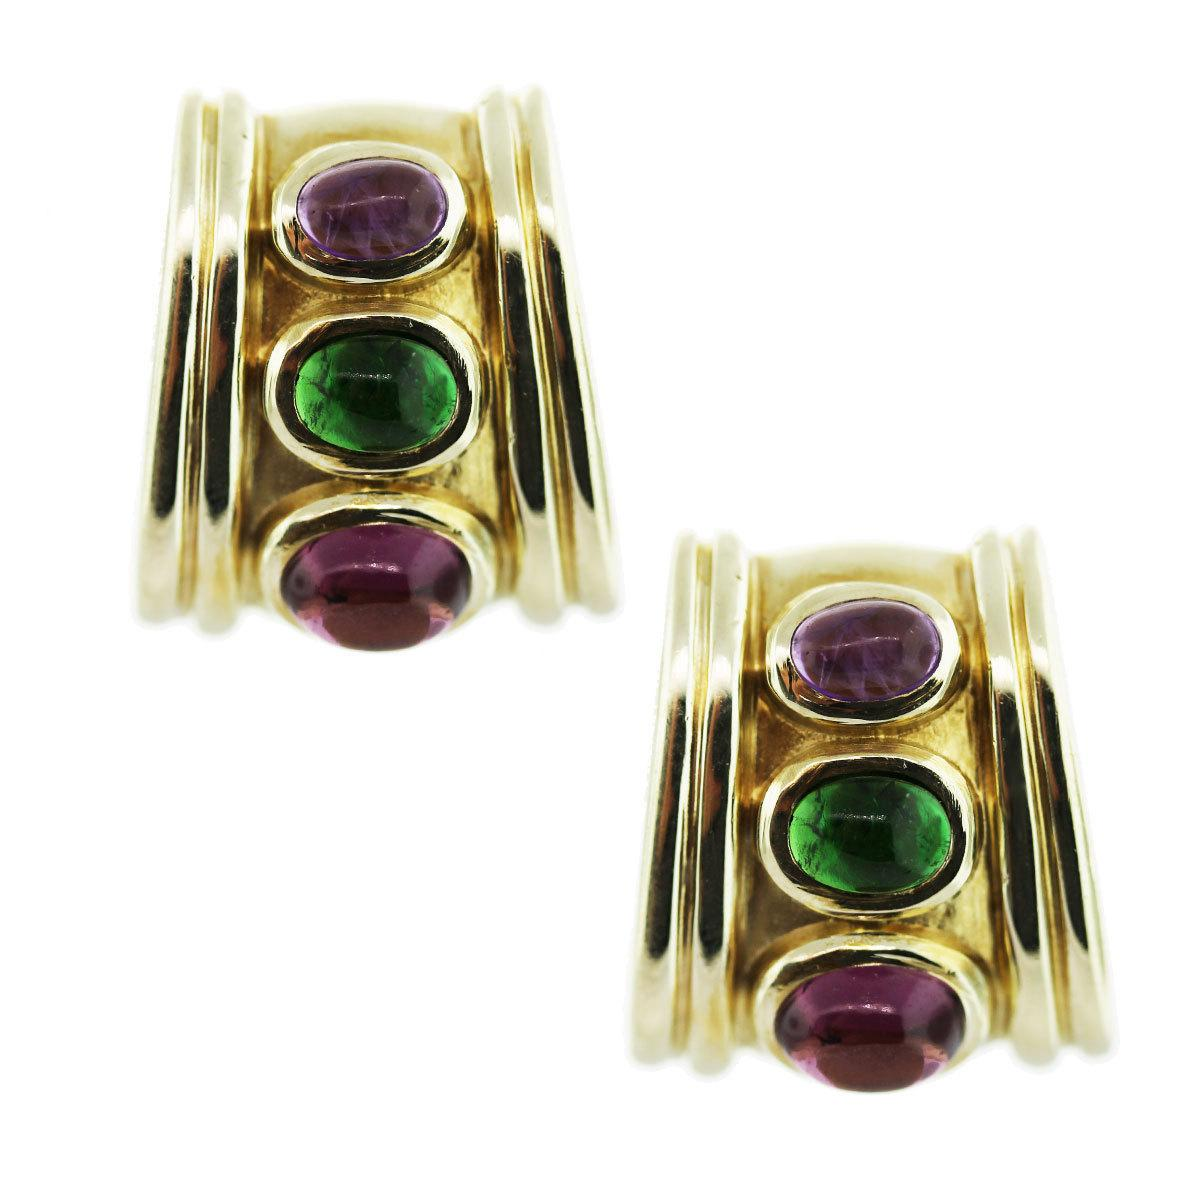 14 Karat Yellow Gold, Pink/Green Tourmaline and Amethyst Wedge Earrings